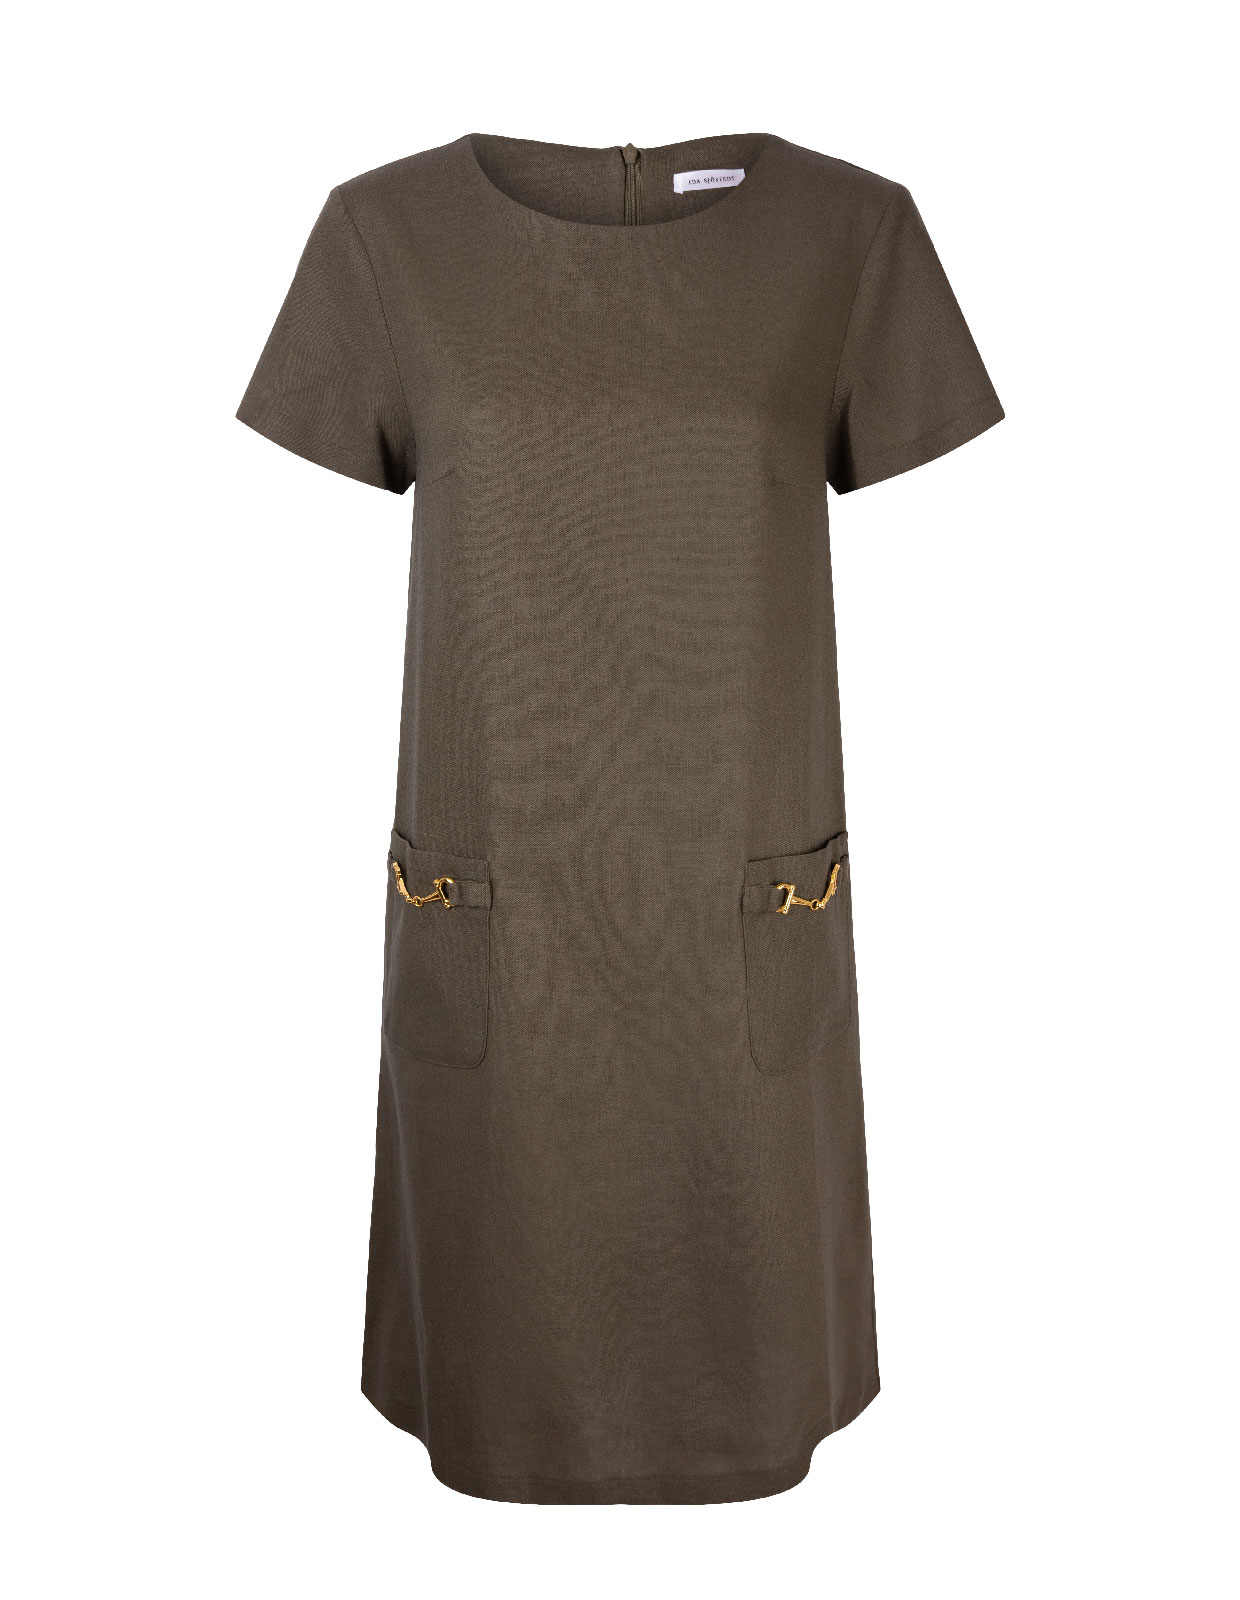 Teardrop Dress Dark Olive